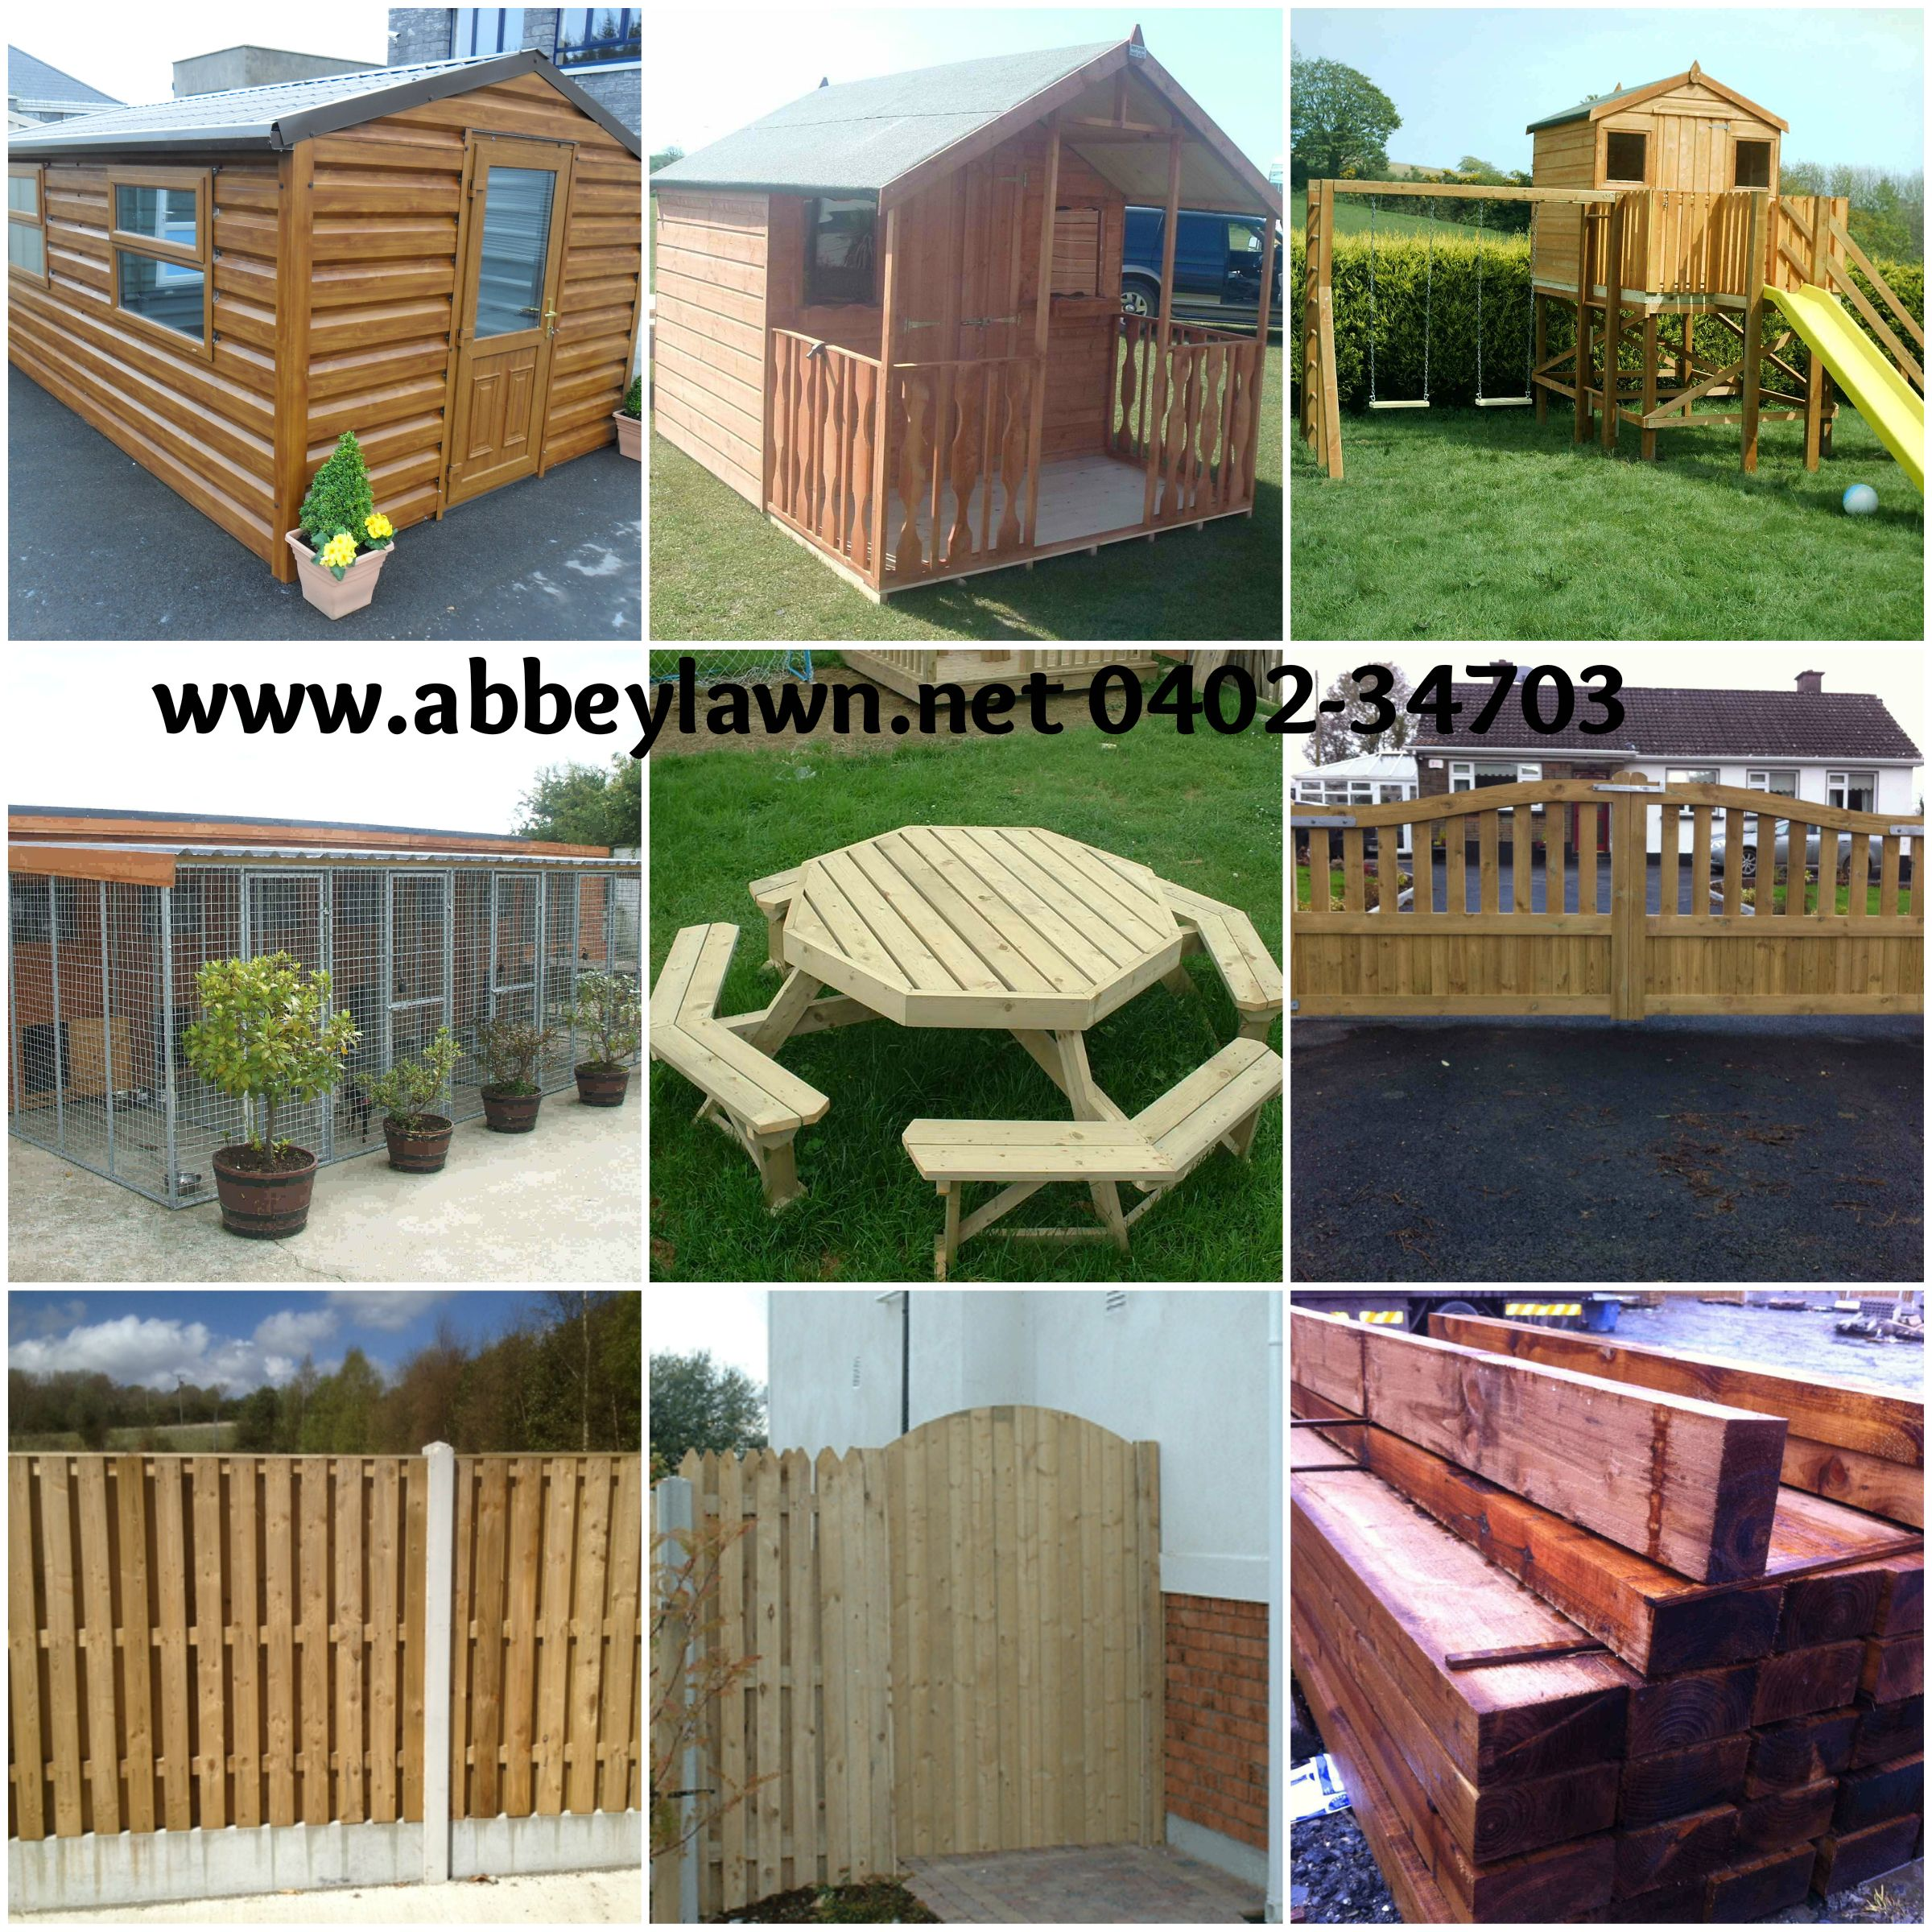 Abbeylawn Garden Products